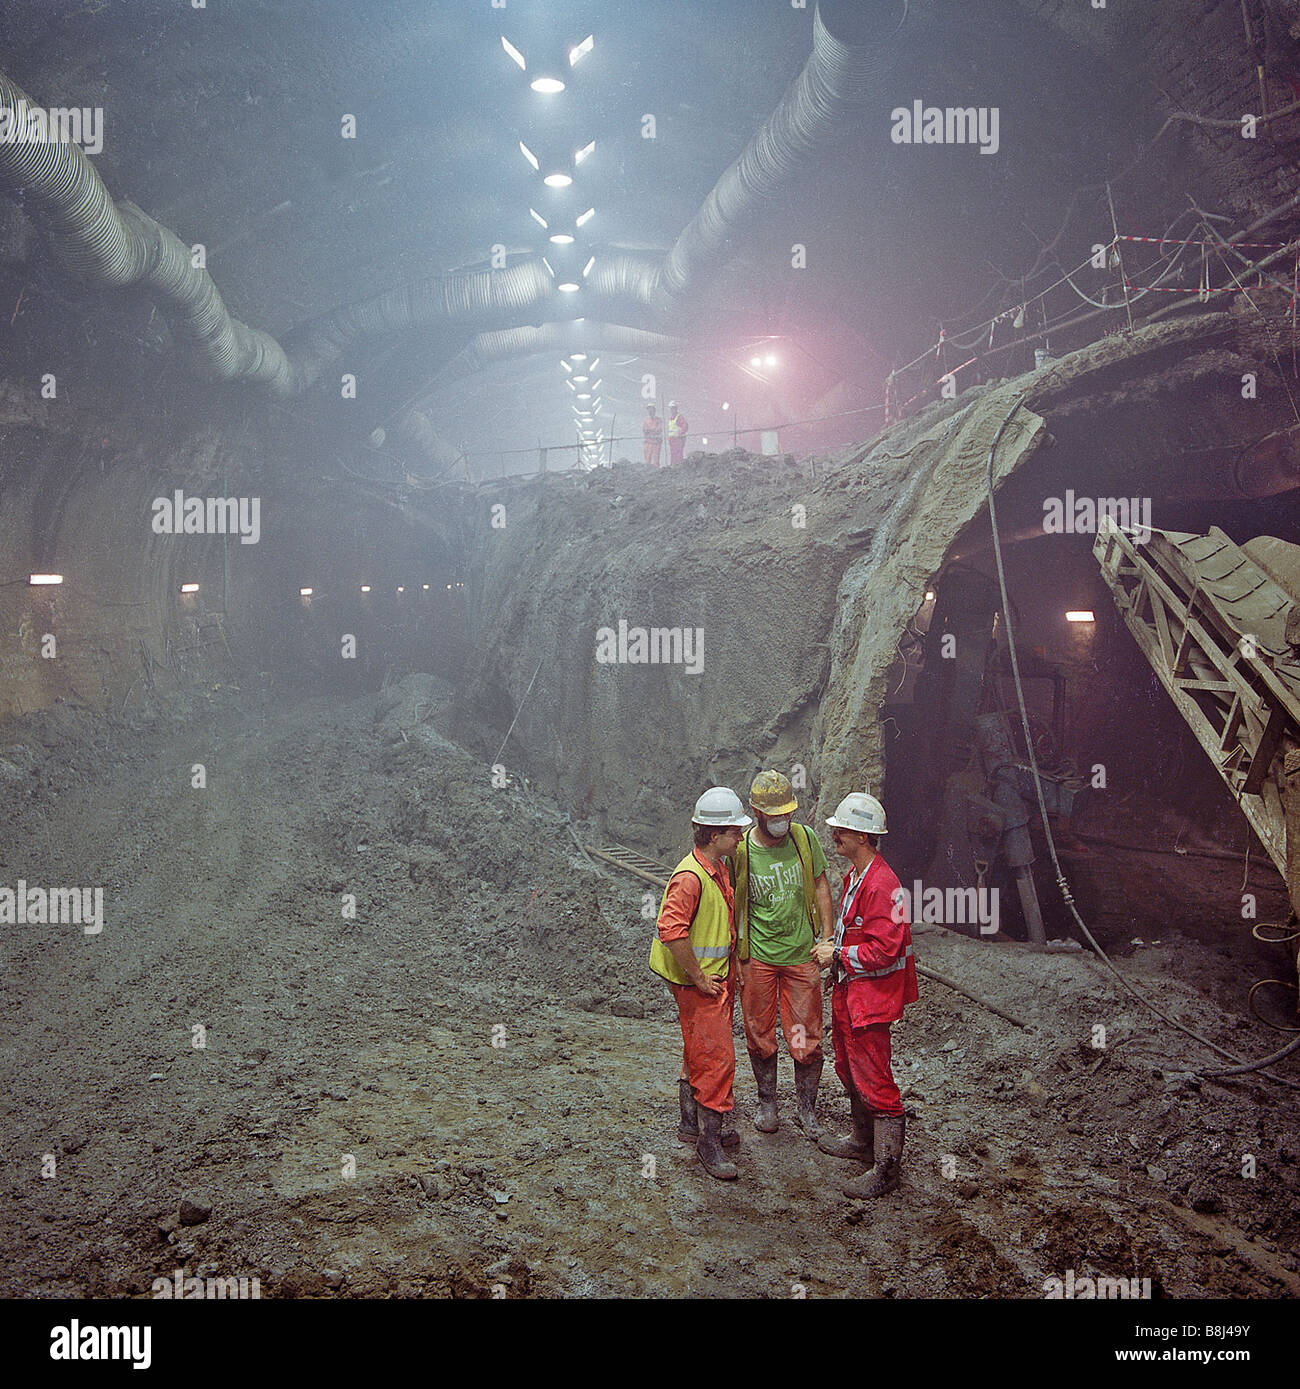 Eurotunnel monitoring engineer checks progress with contractors during construction of the Channel Tunnel UK Crossover - Stock Image